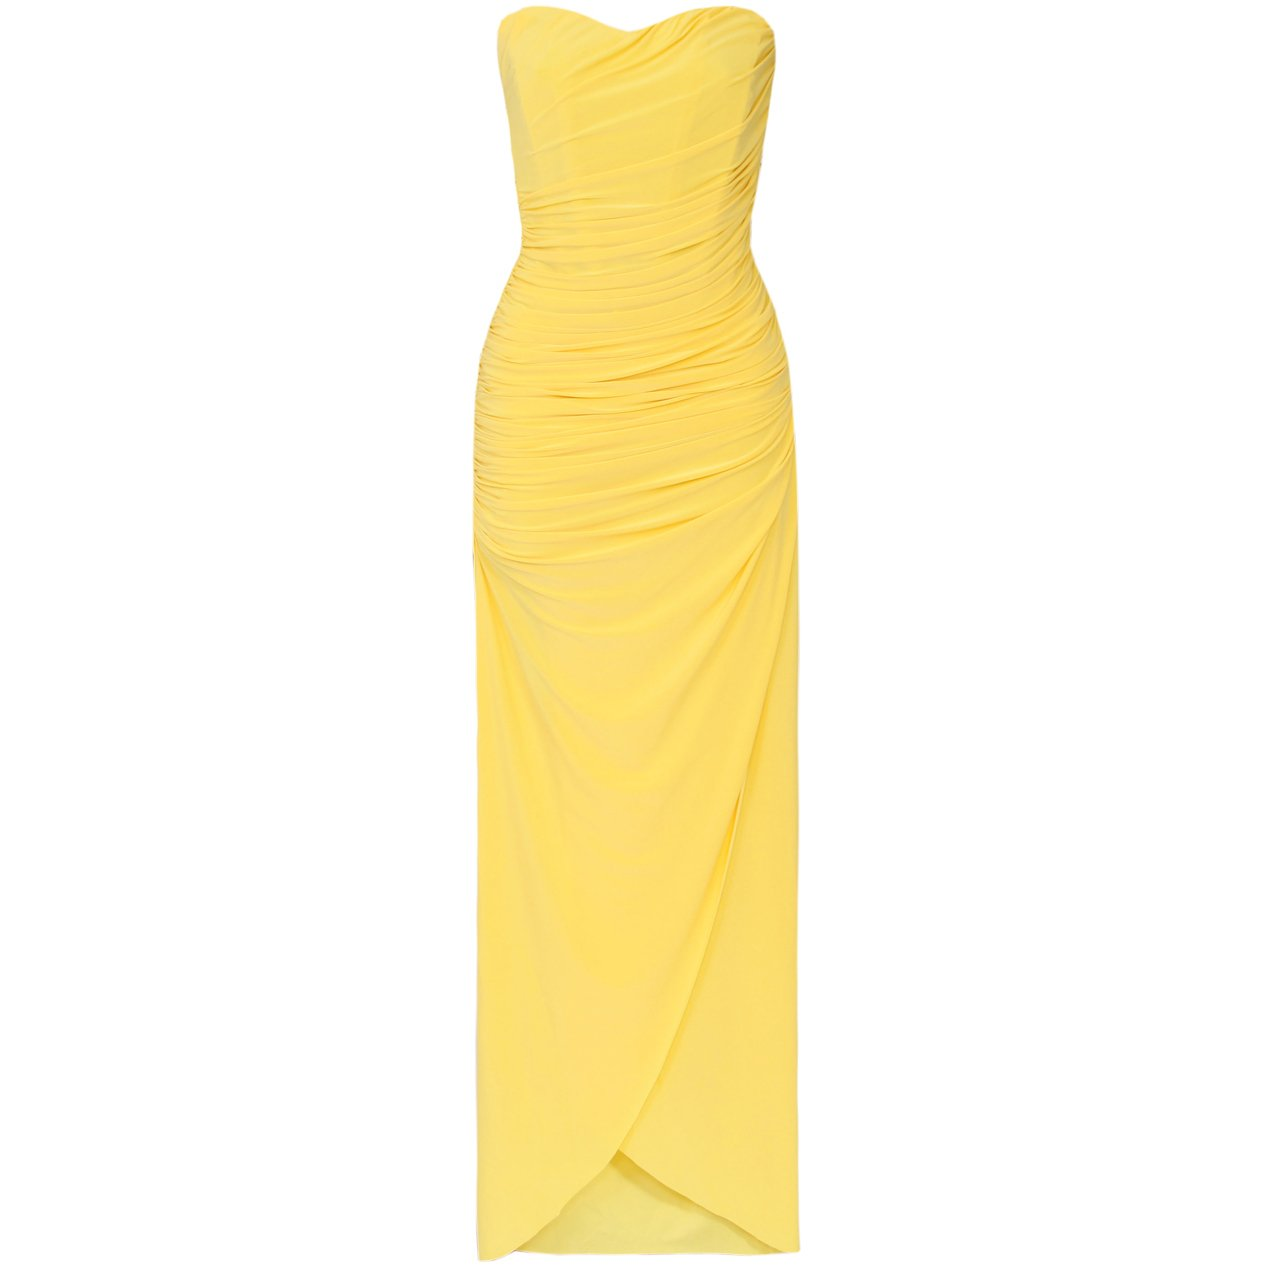 WOMENS LADIES YELLOW STRAPLESS LONG SUMMER EVENING CORSET PARTY PROM GOWN MAXI DRESS UK 10, US 6